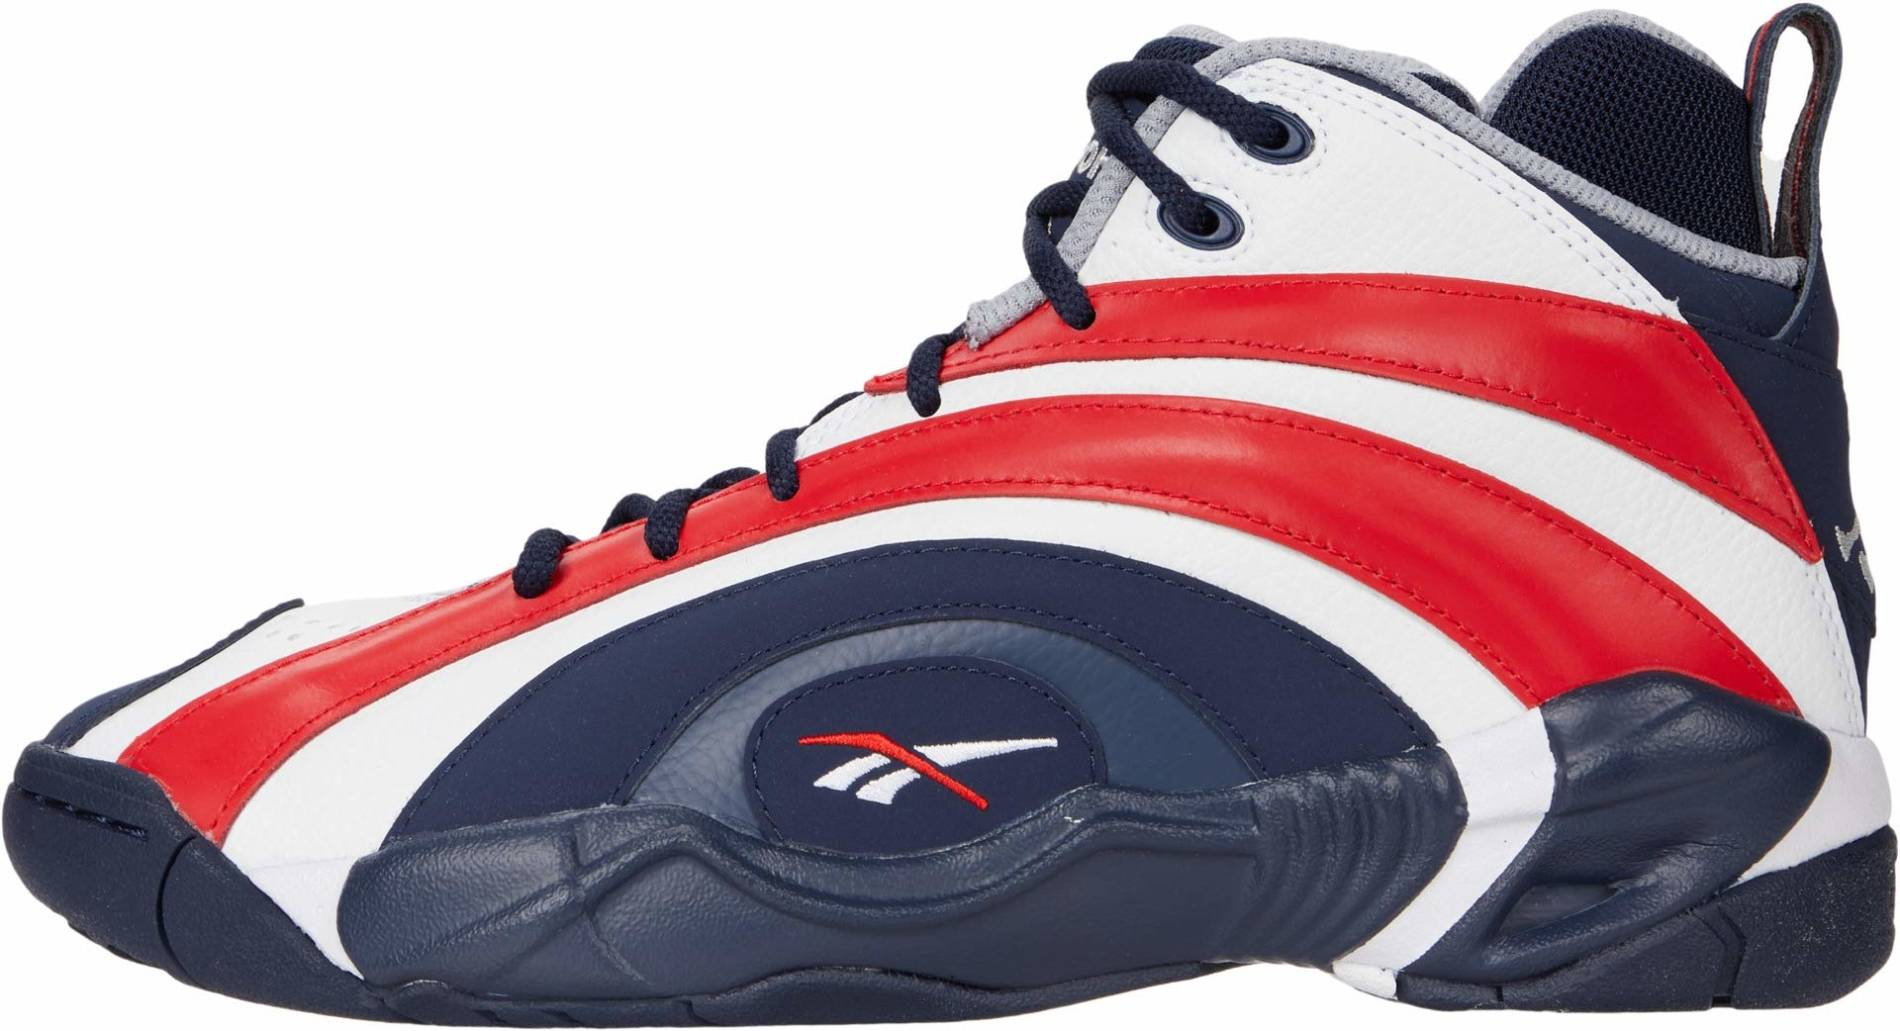 Only $85 + Review of Reebok Shaqnosis